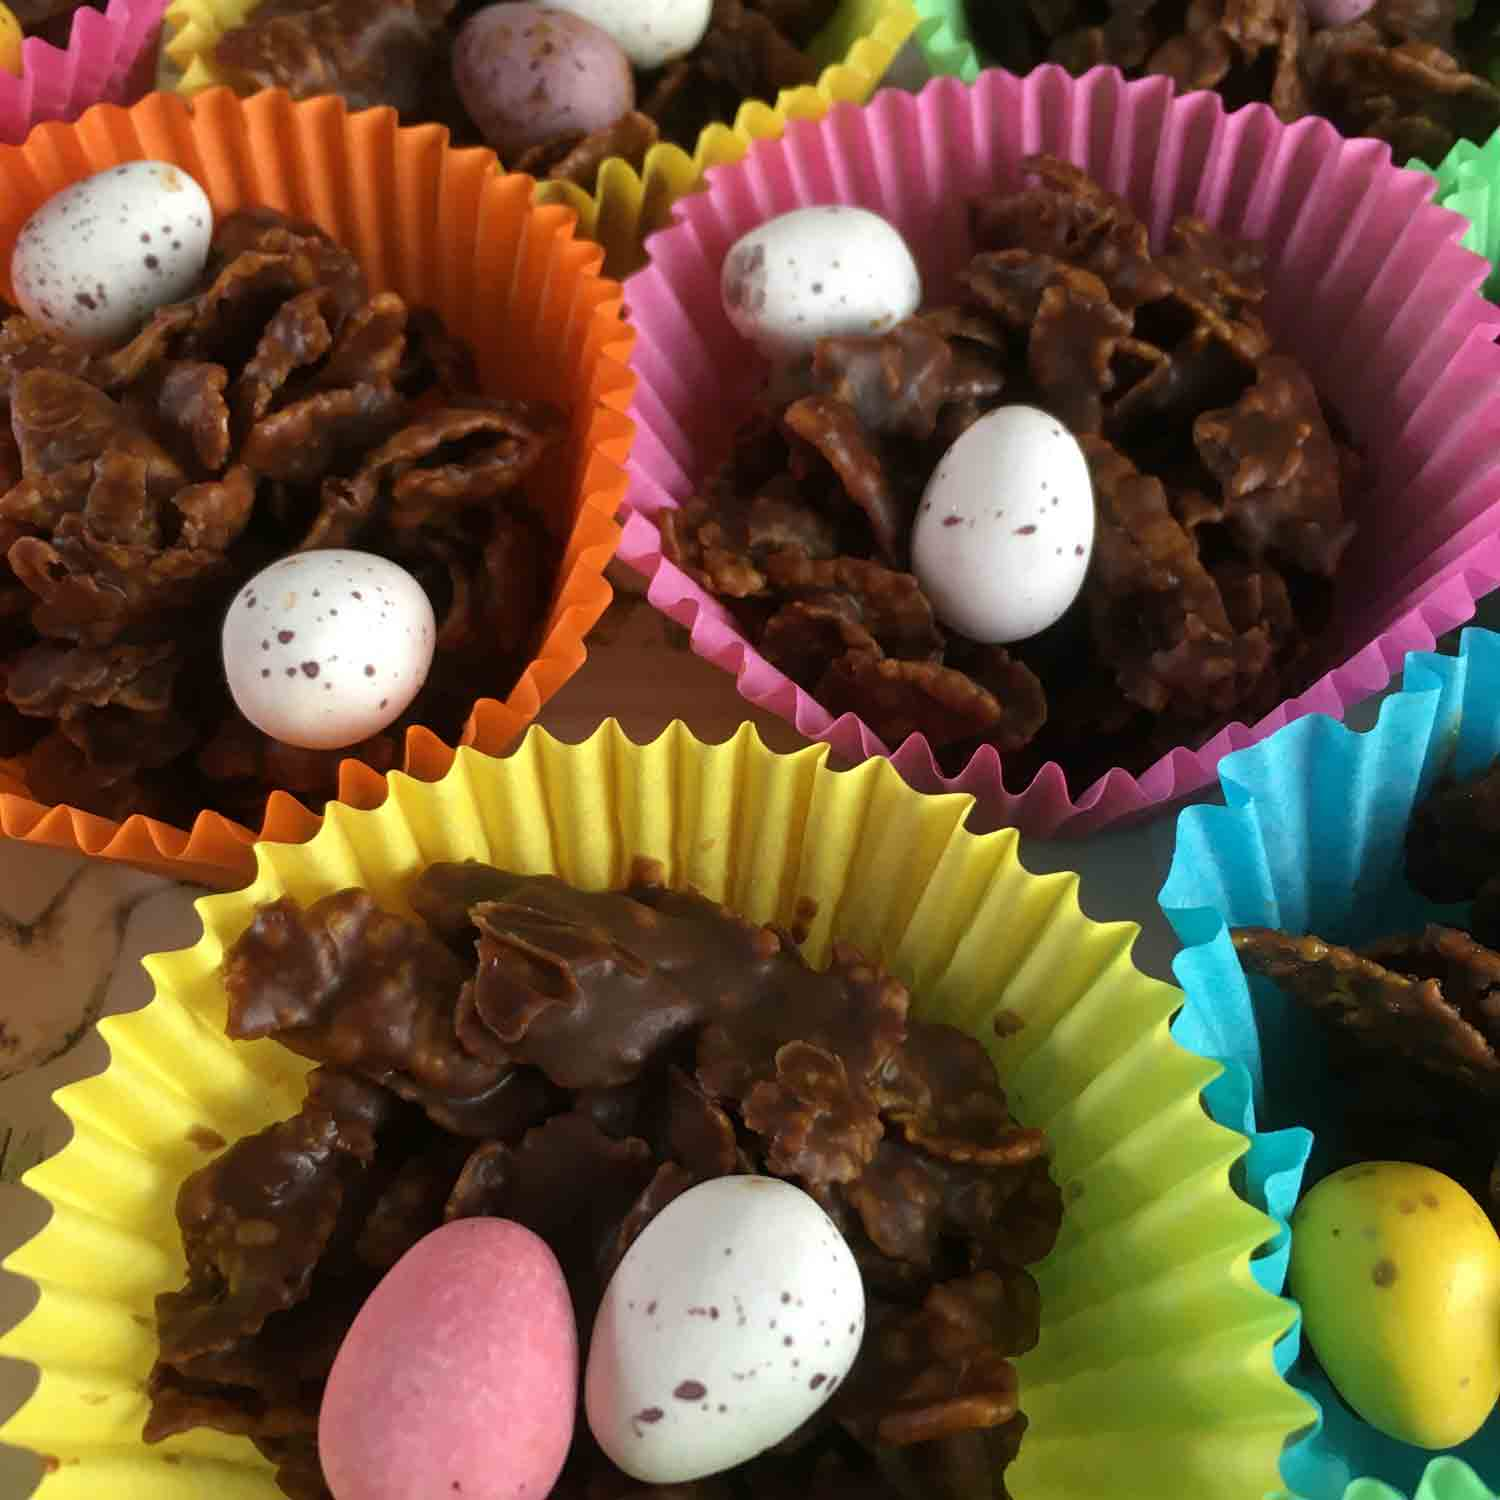 Chocolate crispy nest cakes with instructions for use with Aga range cookers